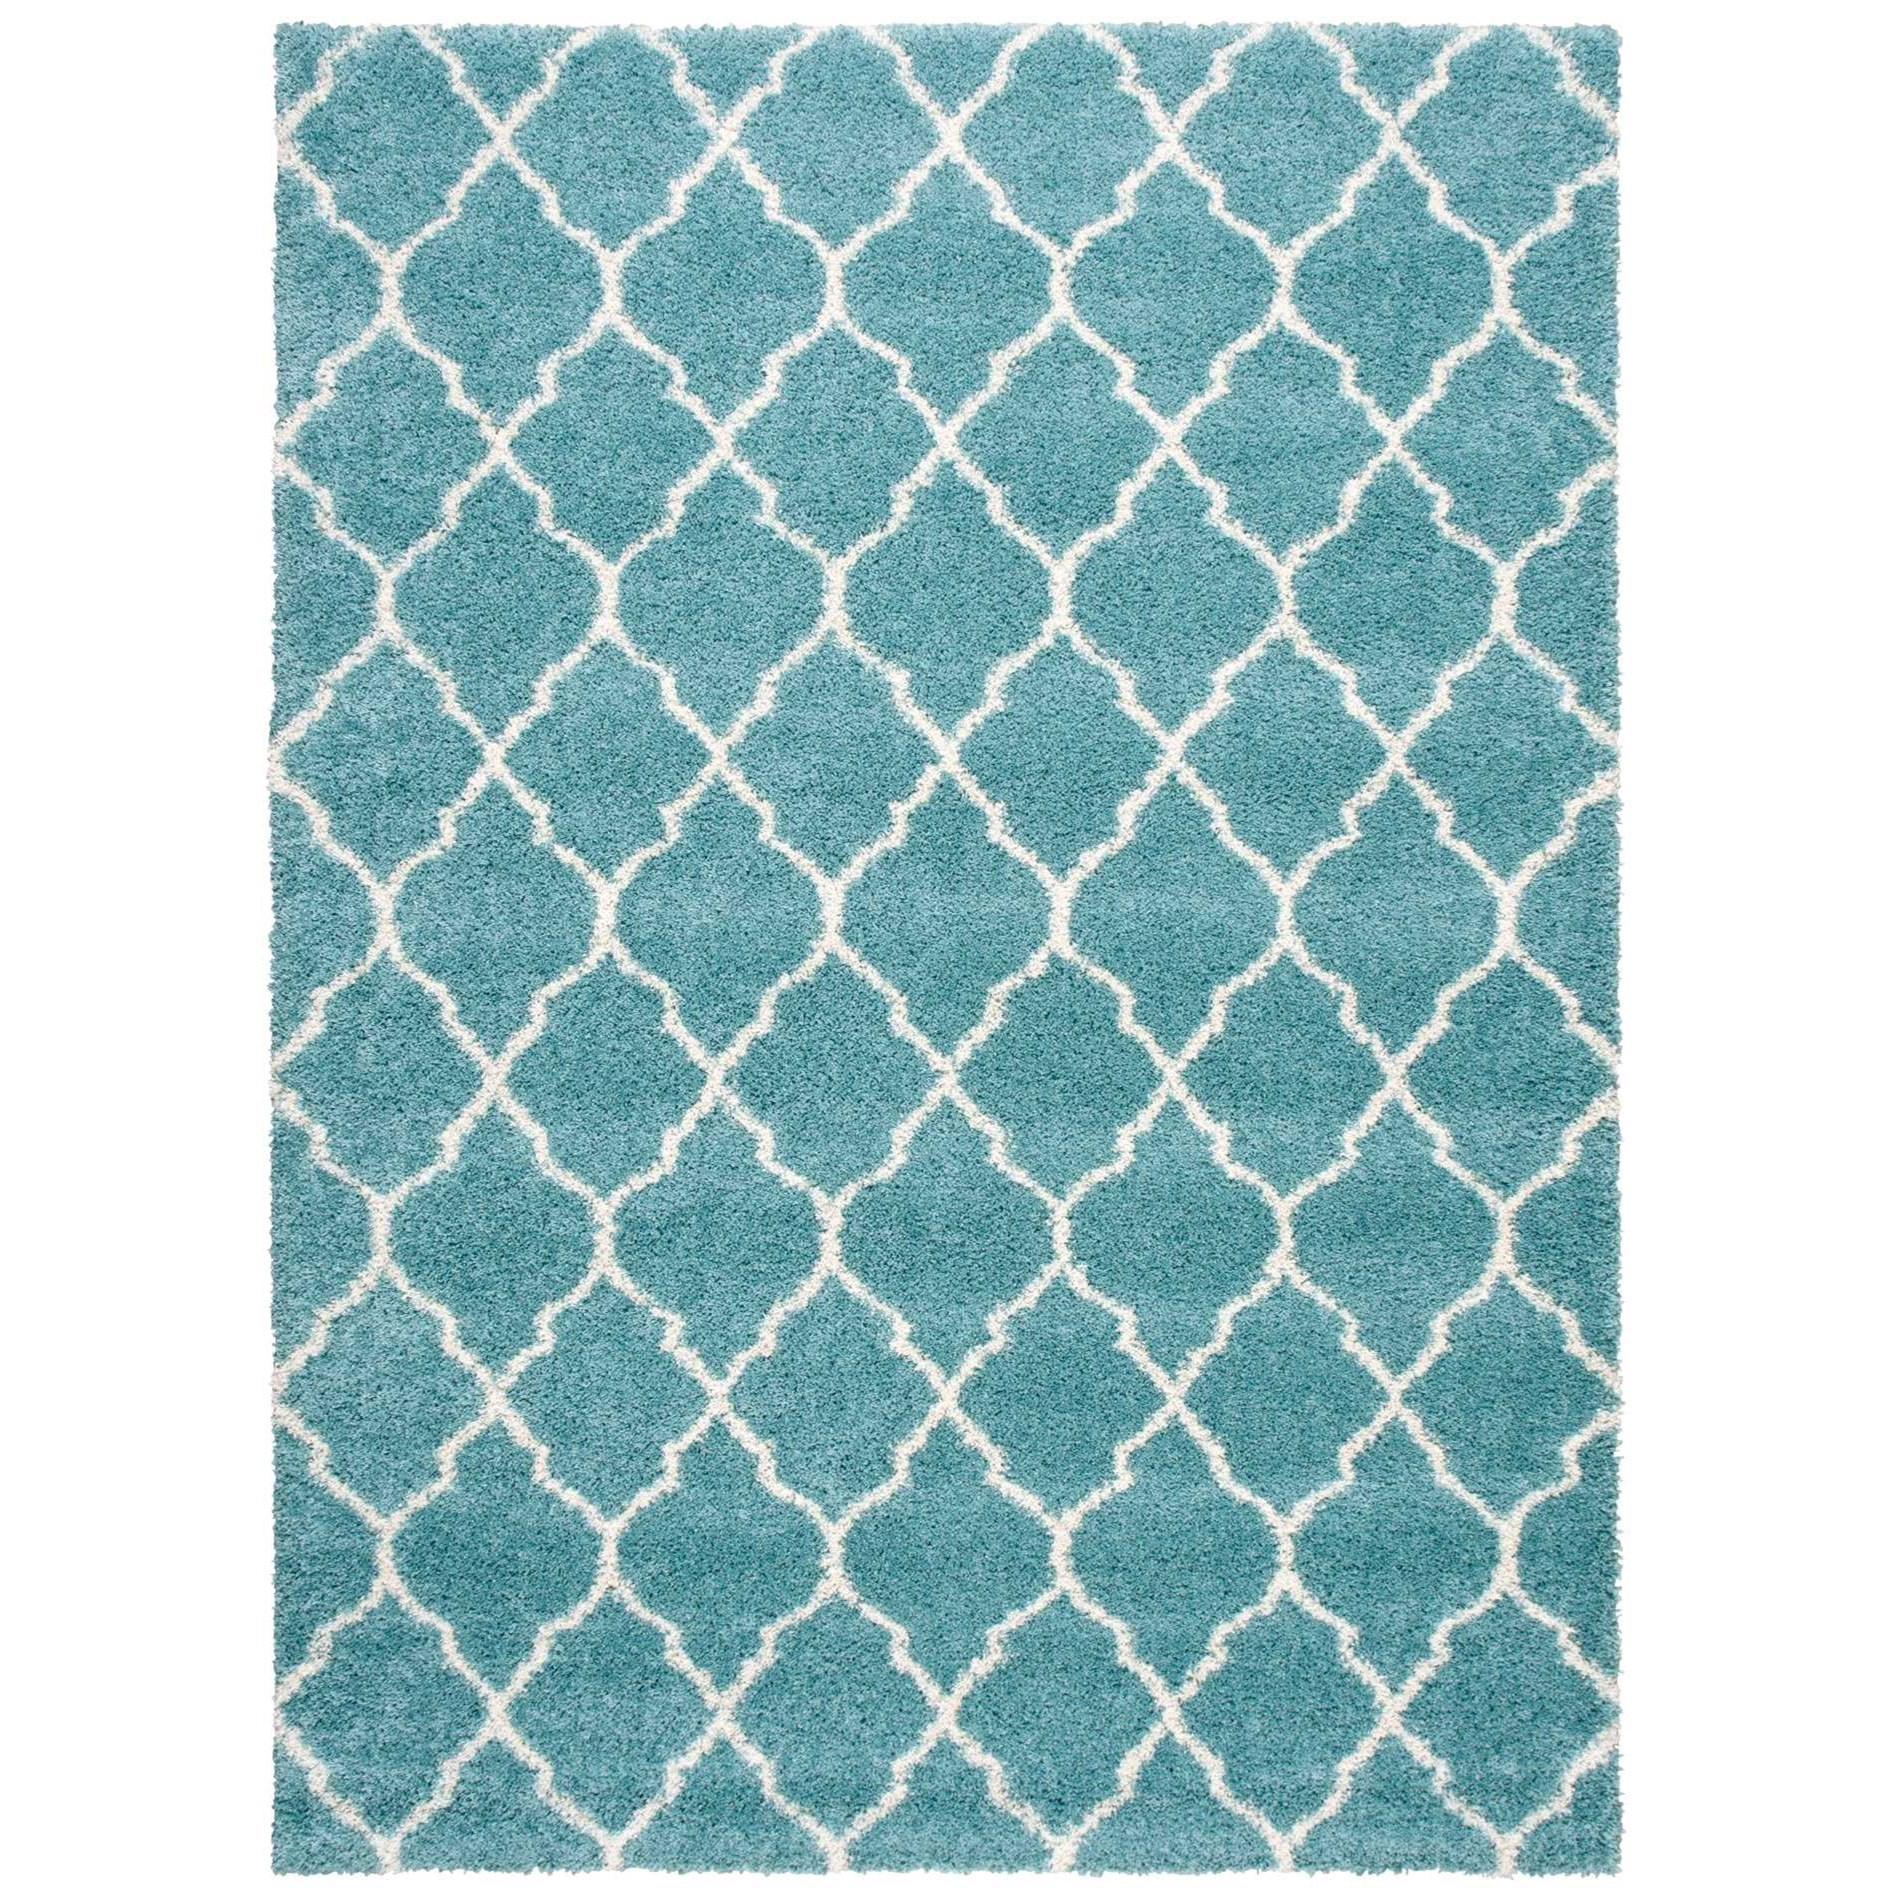 Amore 10' x 13' Aqua Rectangle Rug by Nourison at Home Collections Furniture